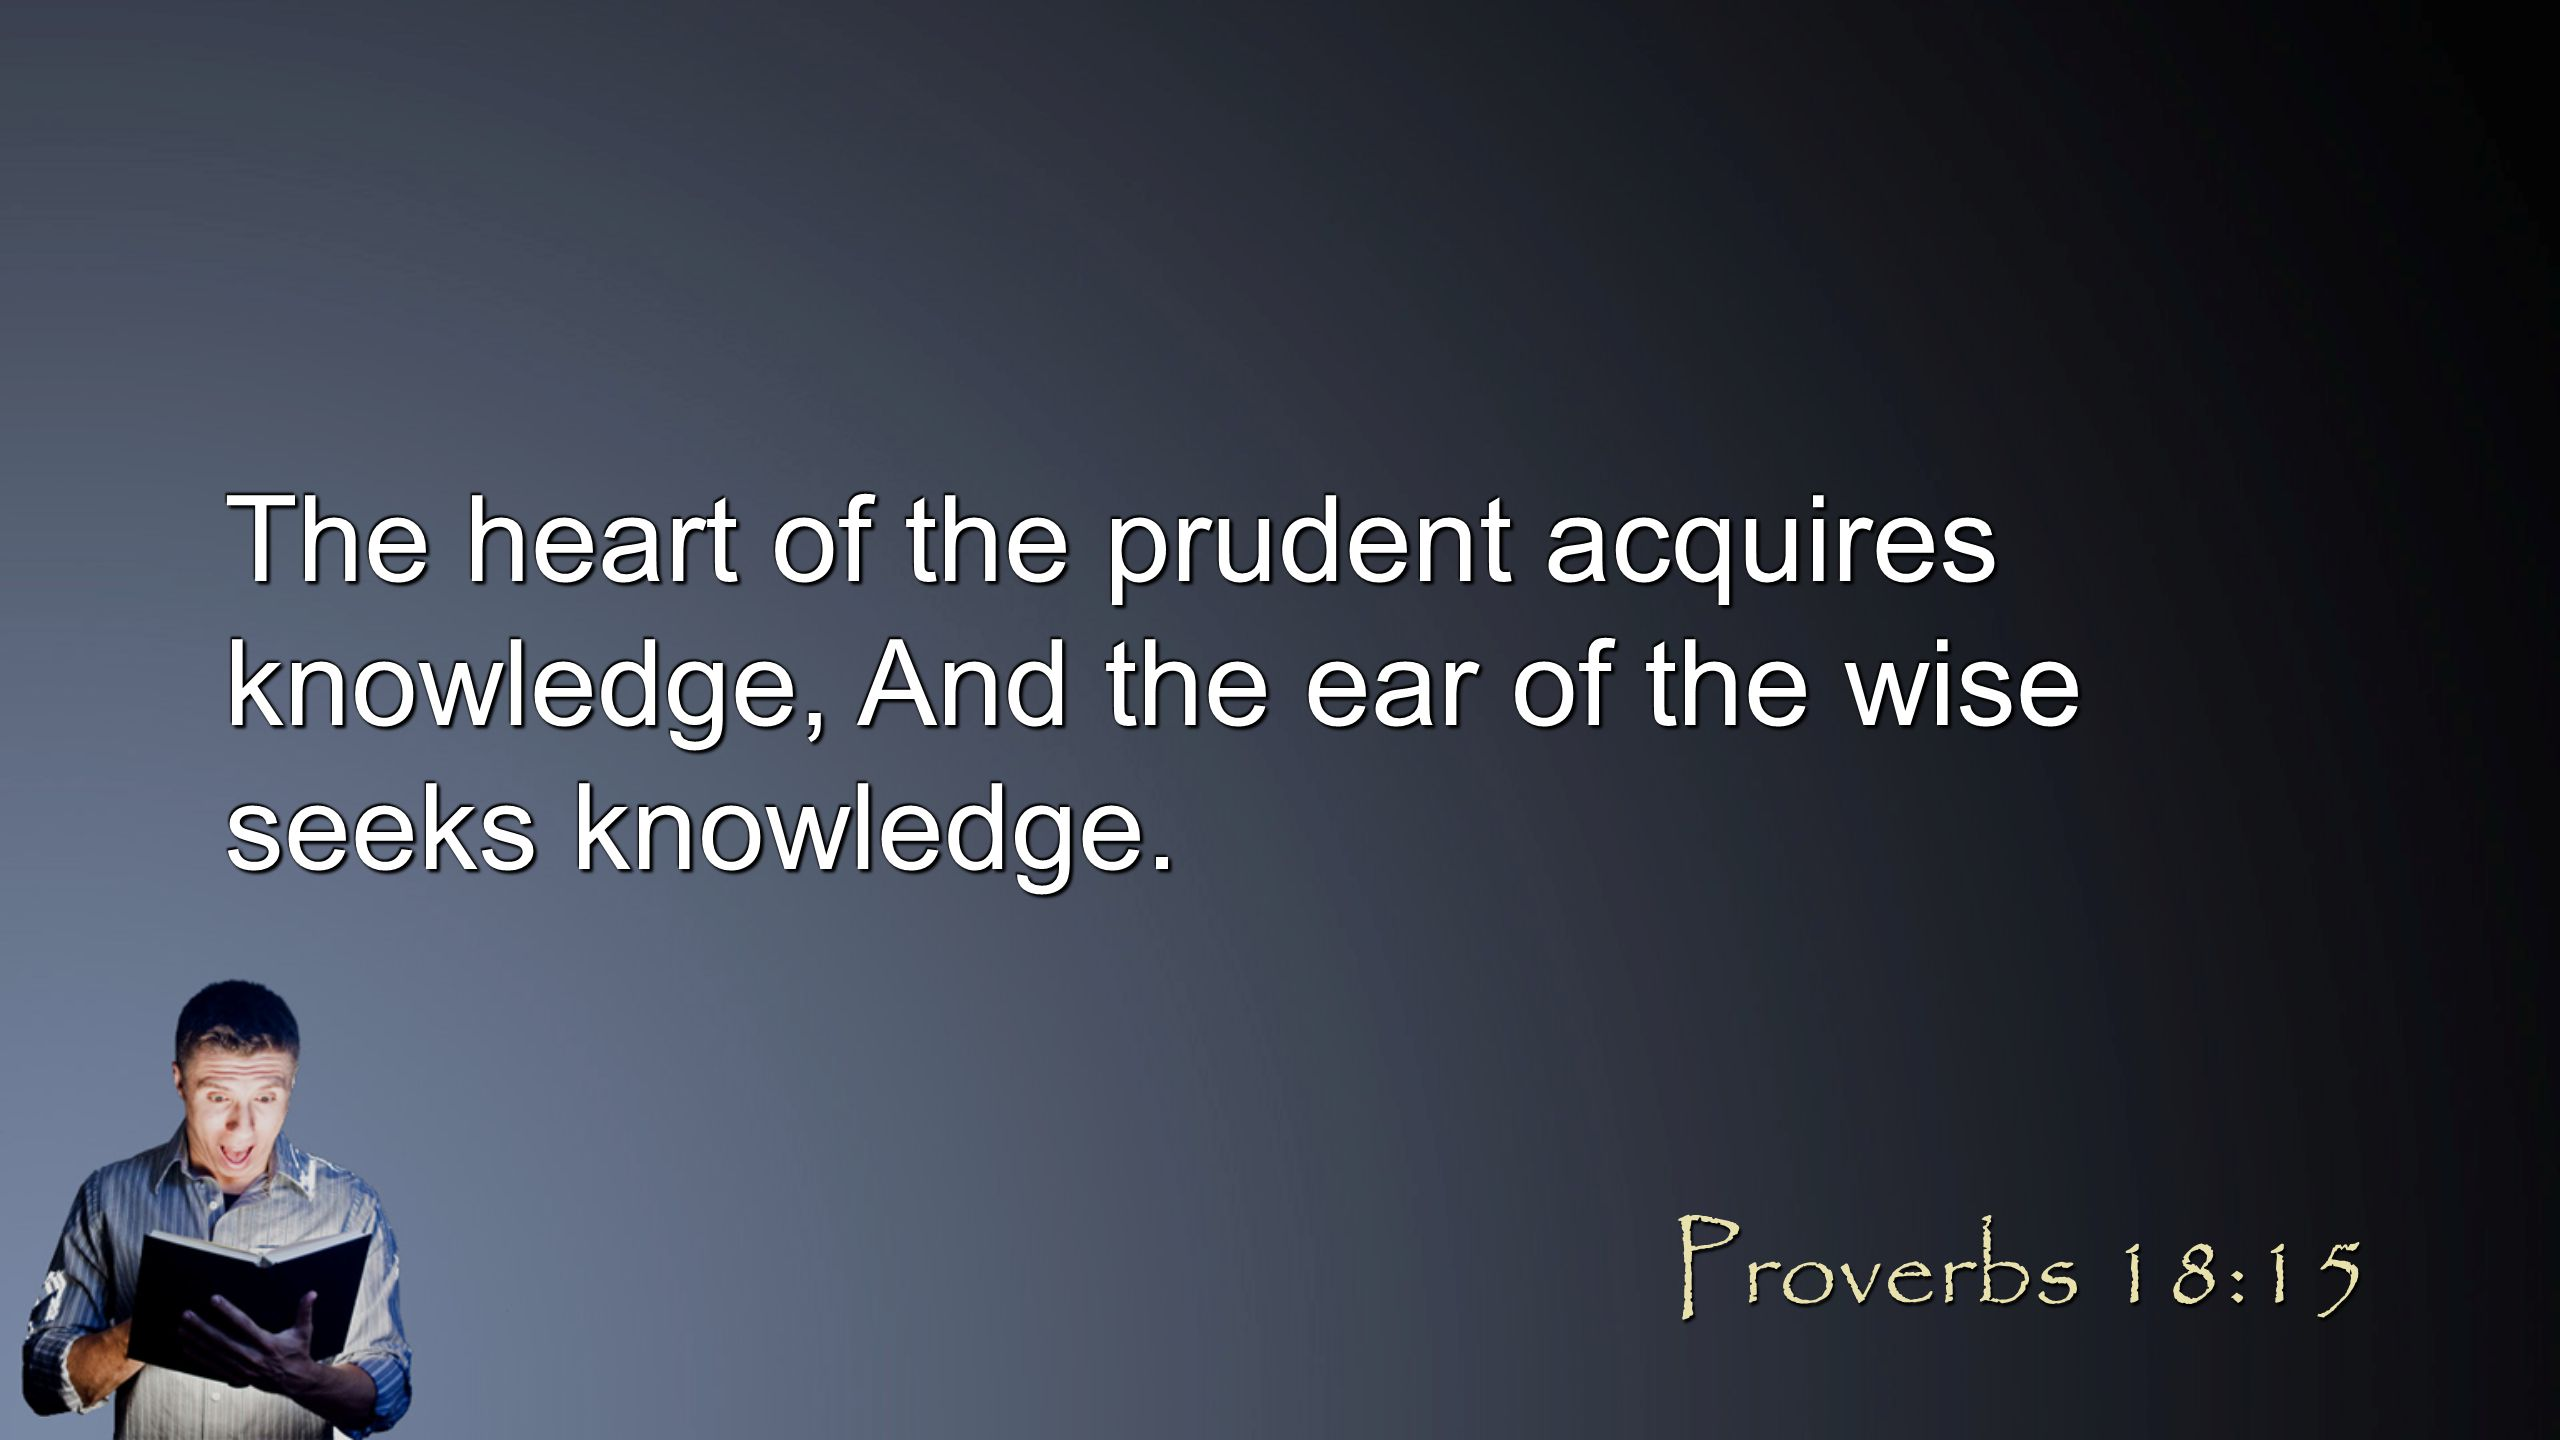 The heart of the prudent acquires knowledge, And the ear of the wise seeks knowledge. Proverbs 18:15